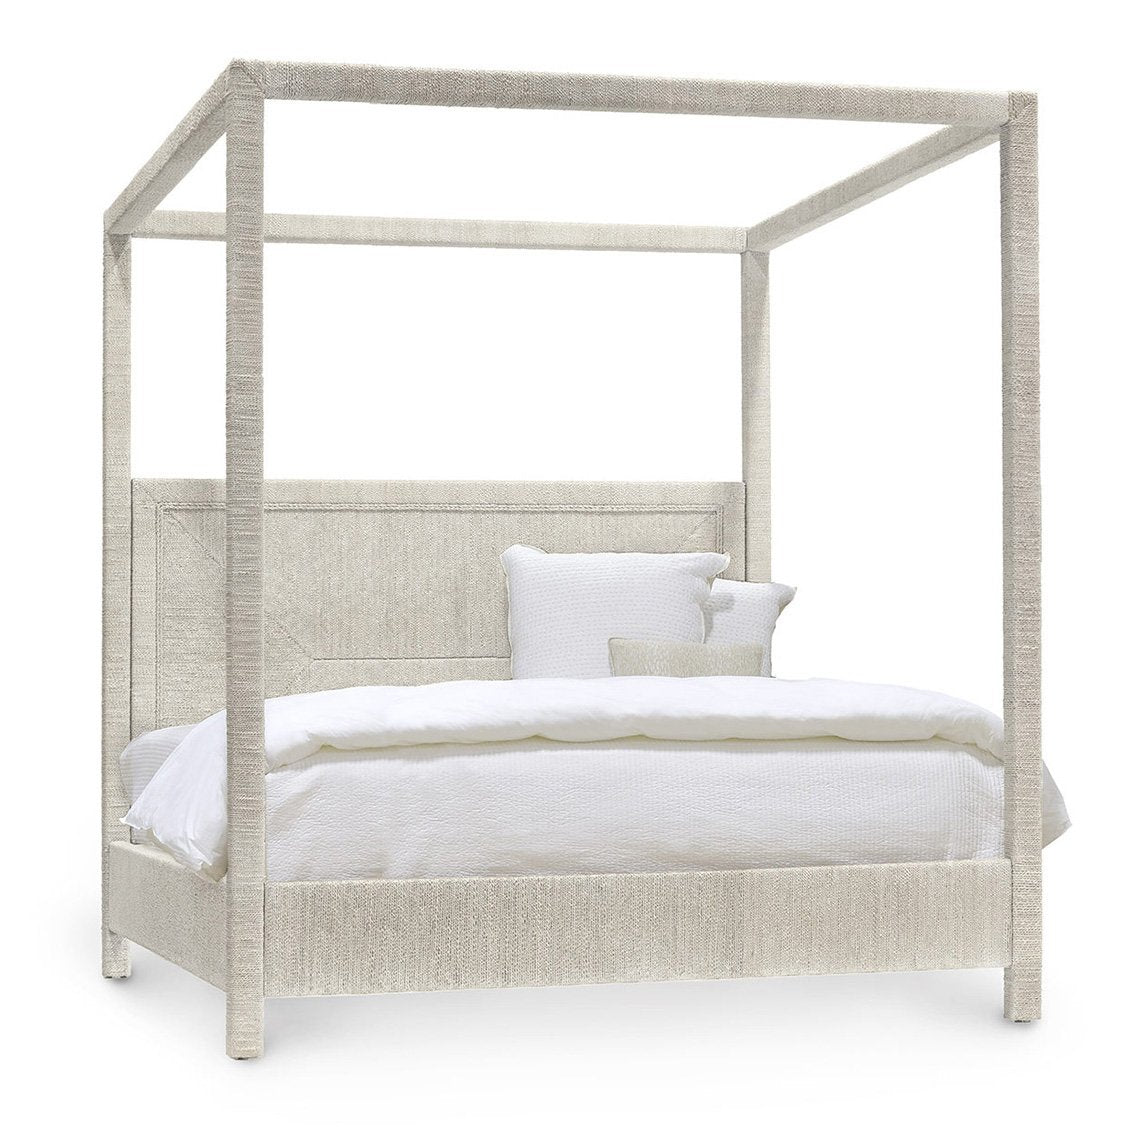 Woodside Canopy Bed, King, Wht Snd